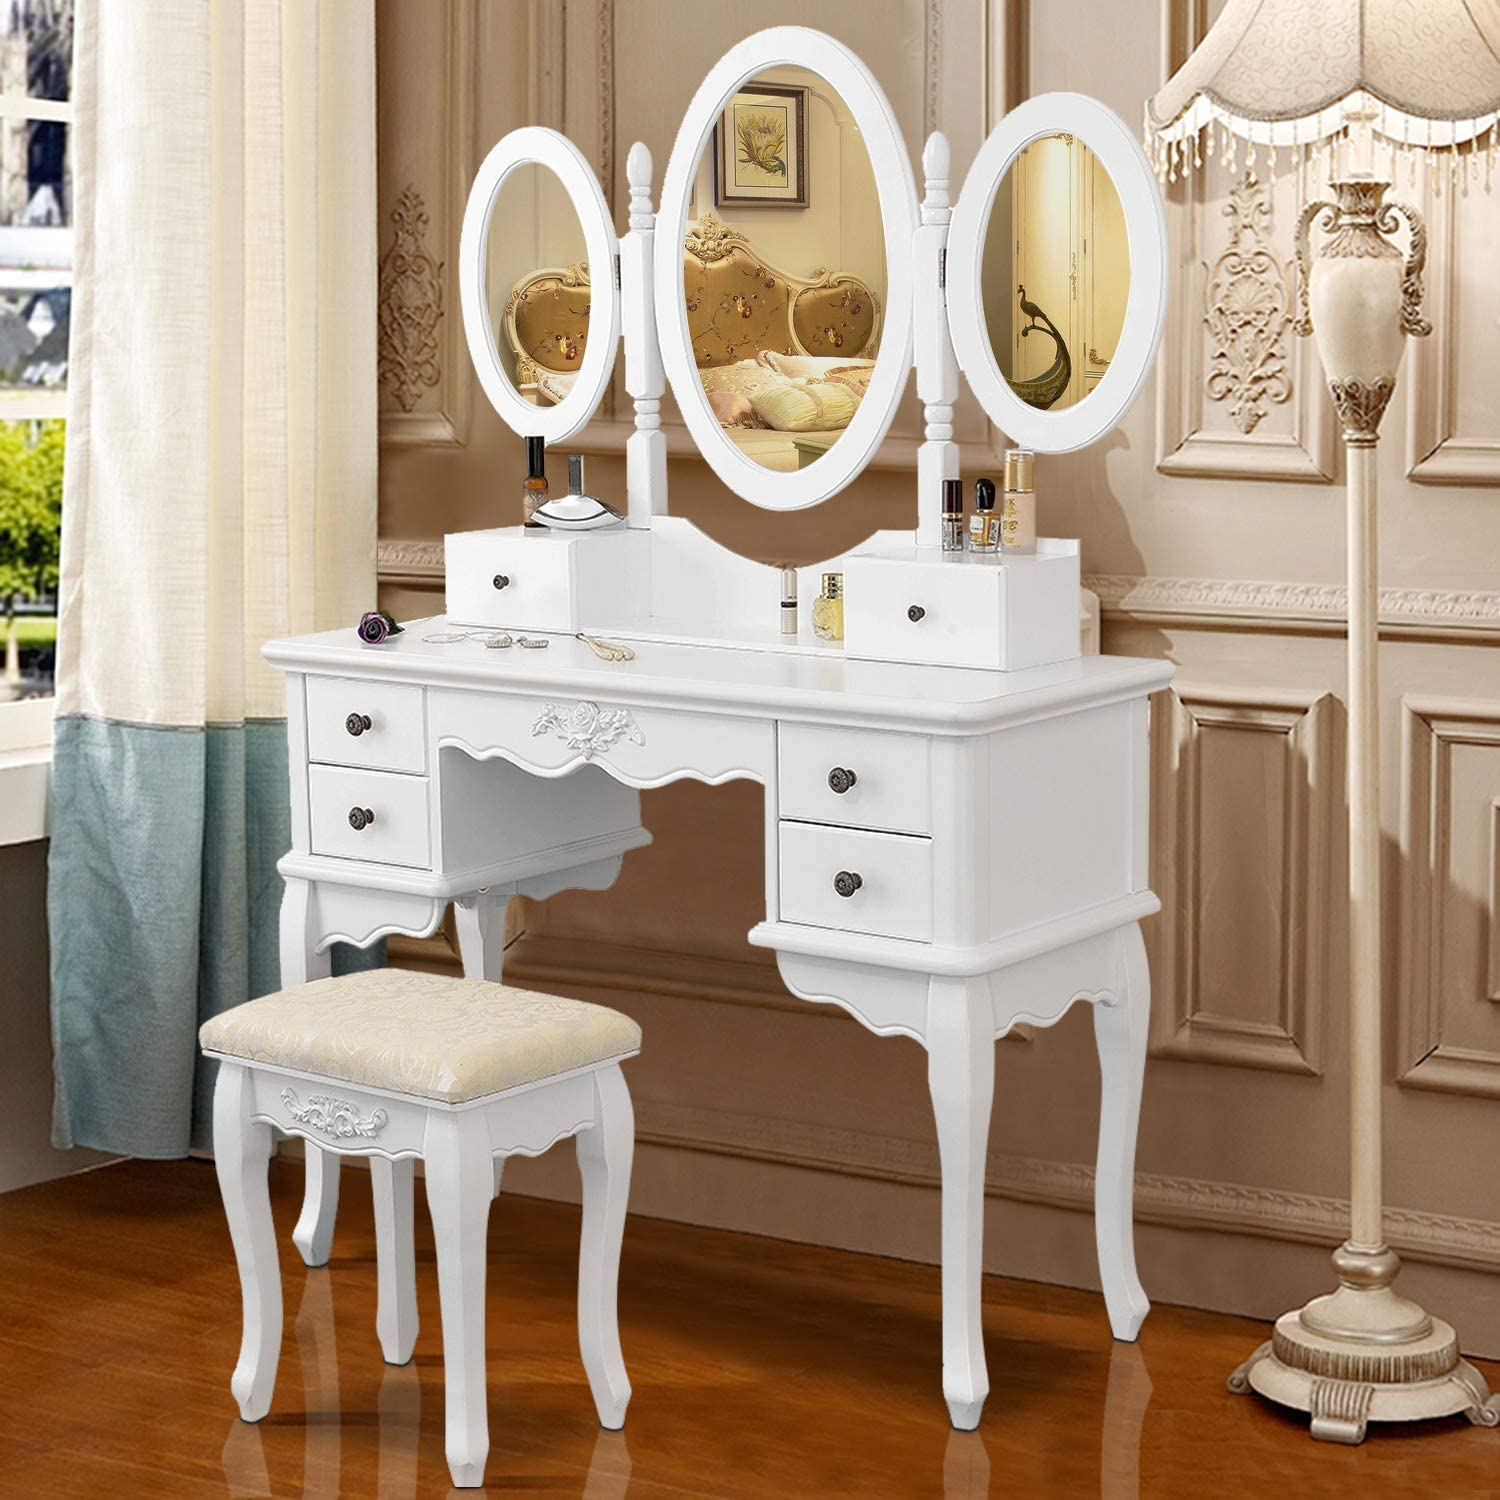 Vanity Makeup Table Set Tri-Folding Mirror Dressing Table with Padded Stool 6 Drawers,Bedroom Vanity Table Writing Desk with Removable for Girls Women,White